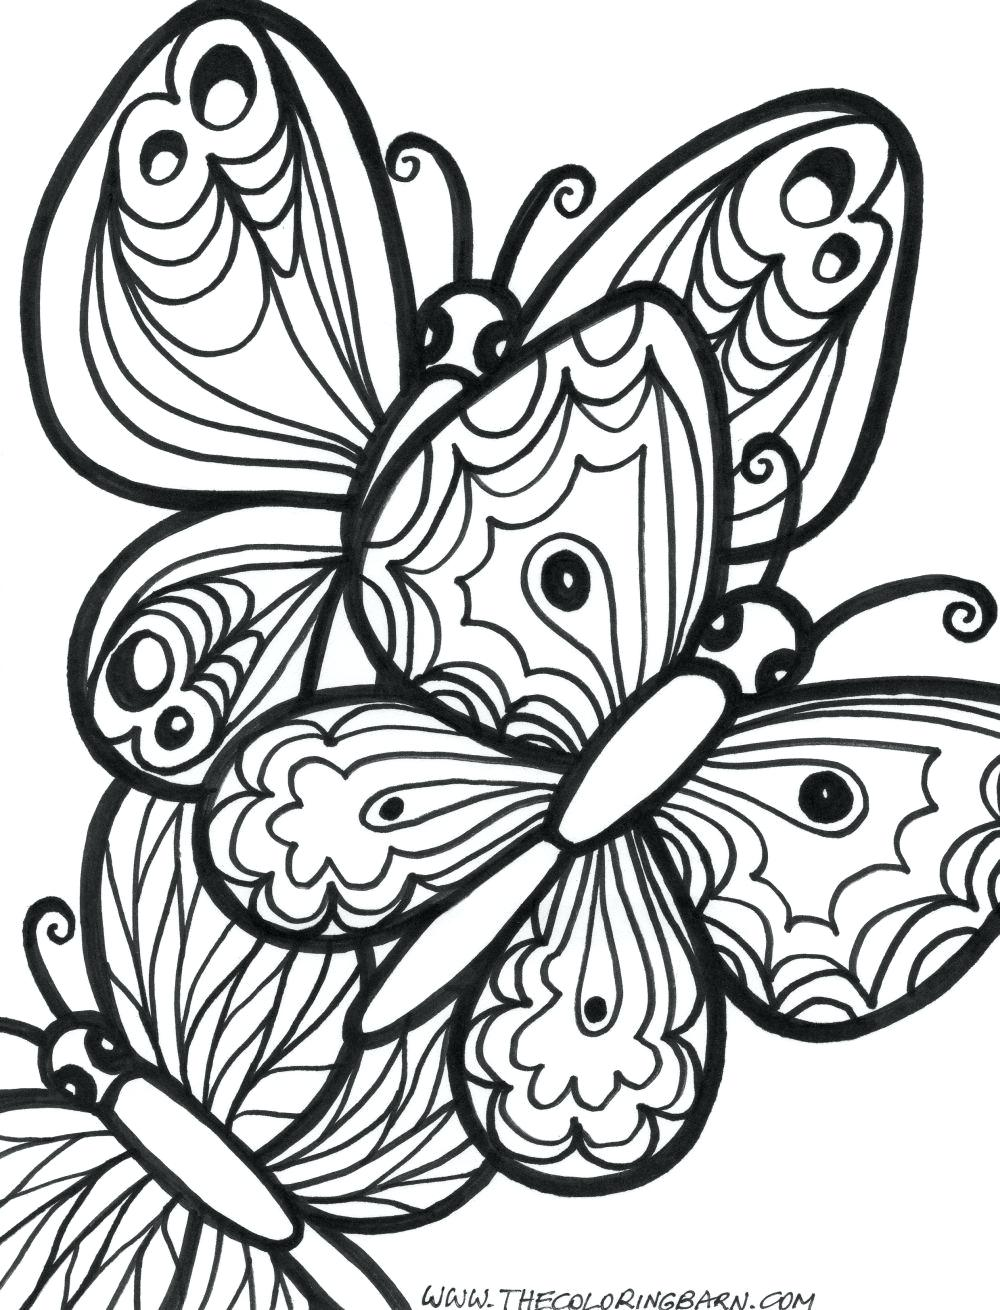 1000x1310 Adults Coloring Pages Free Download Printable Intended For Adult